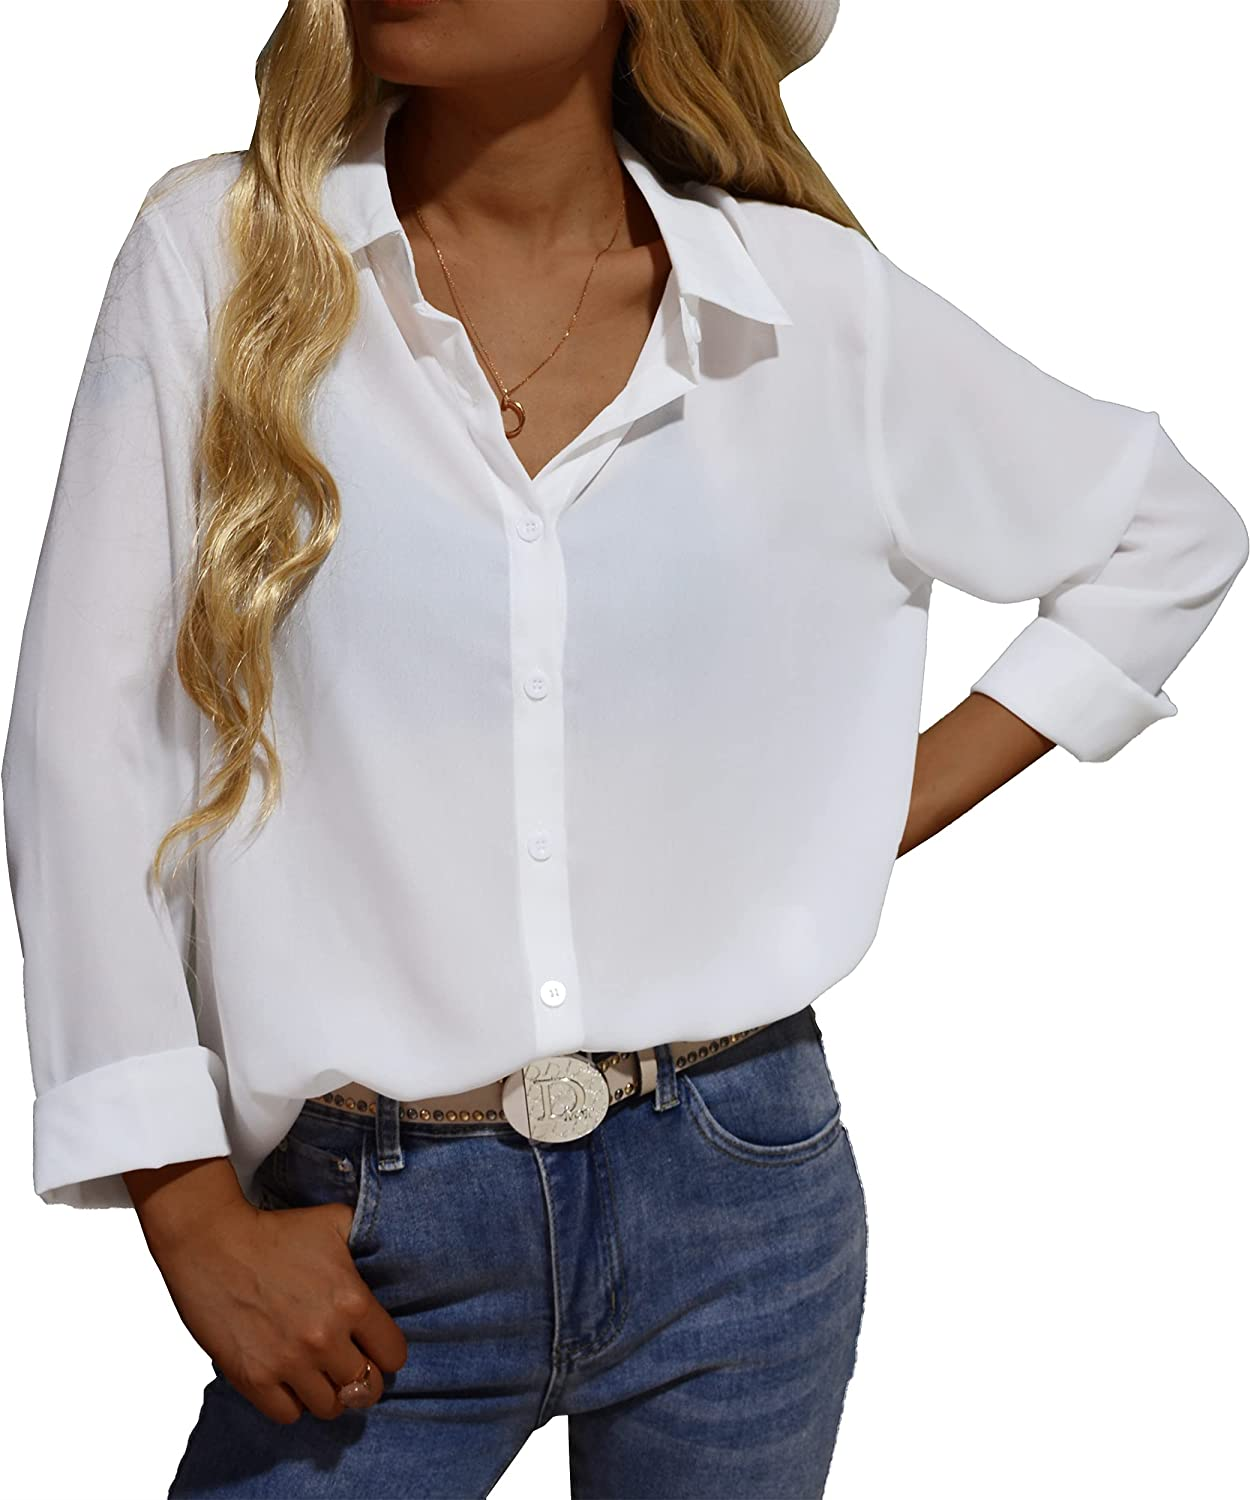 S7 Women's Casual Button-Down Chiffon Shirts - V-Neck Long Sleeve Business Office Blouses Tops